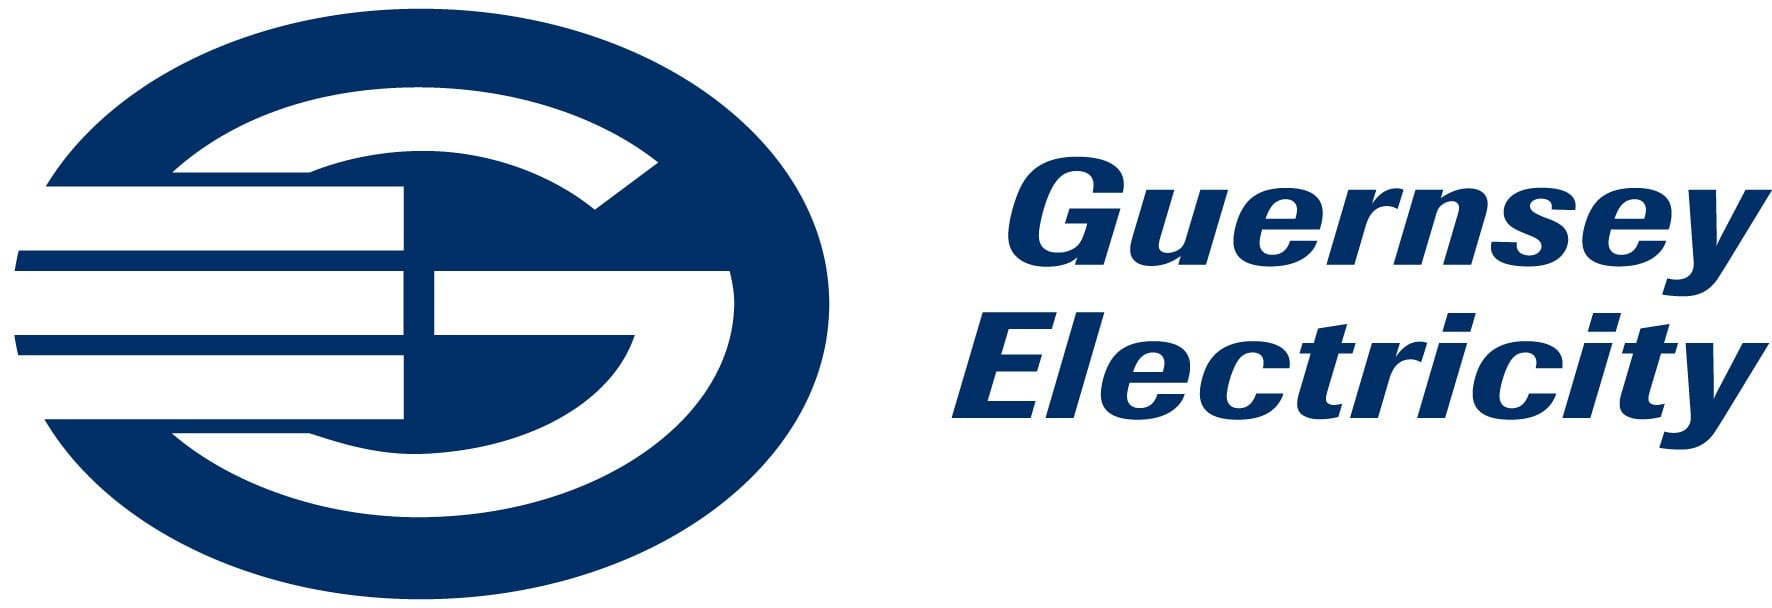 Guernsey Electric logo